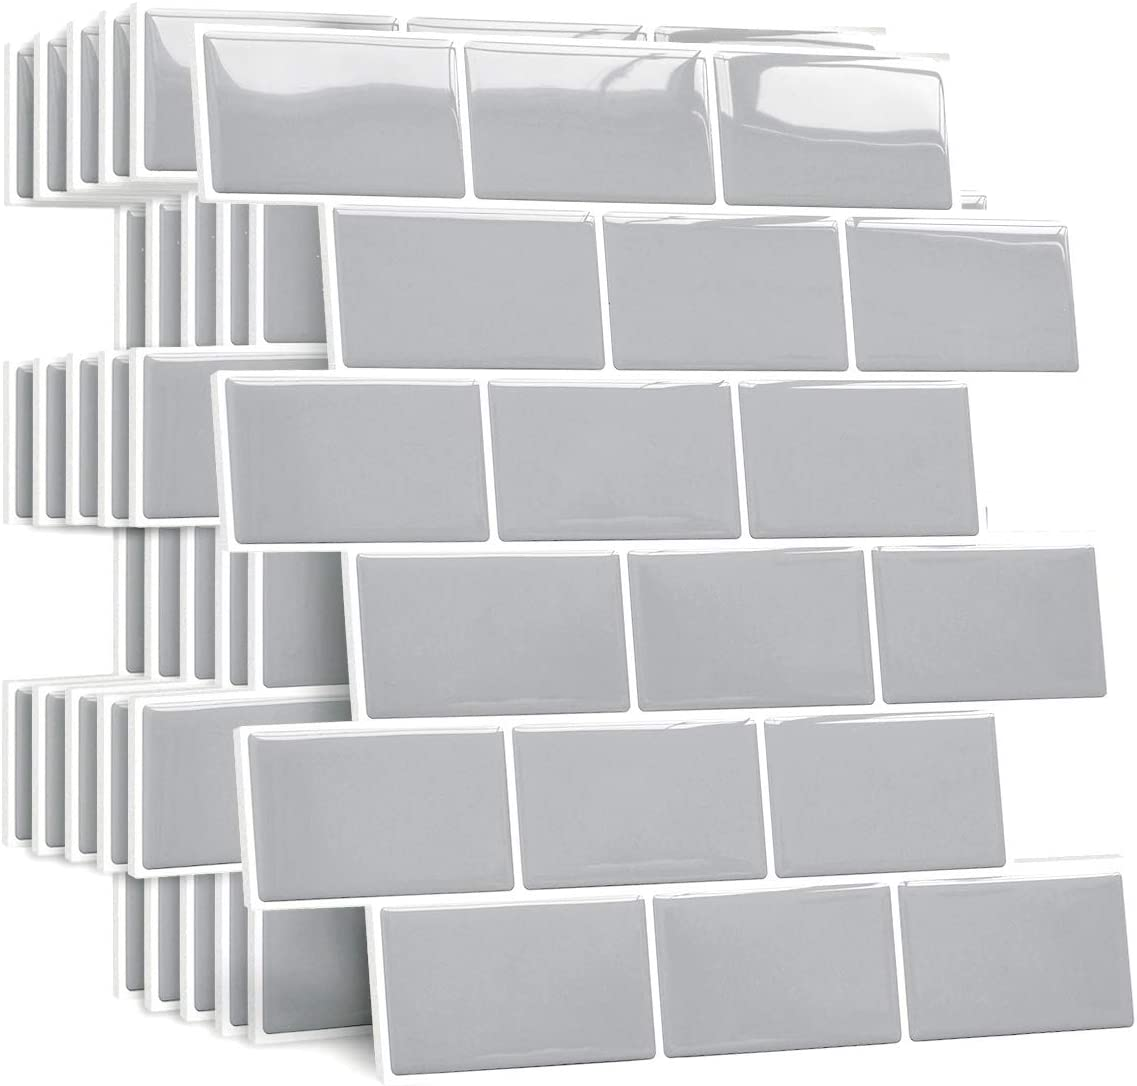 Yoillione Upgrade Thicker Peel Sale price and Backsplash Wall f Quality inspection Stick Tiles